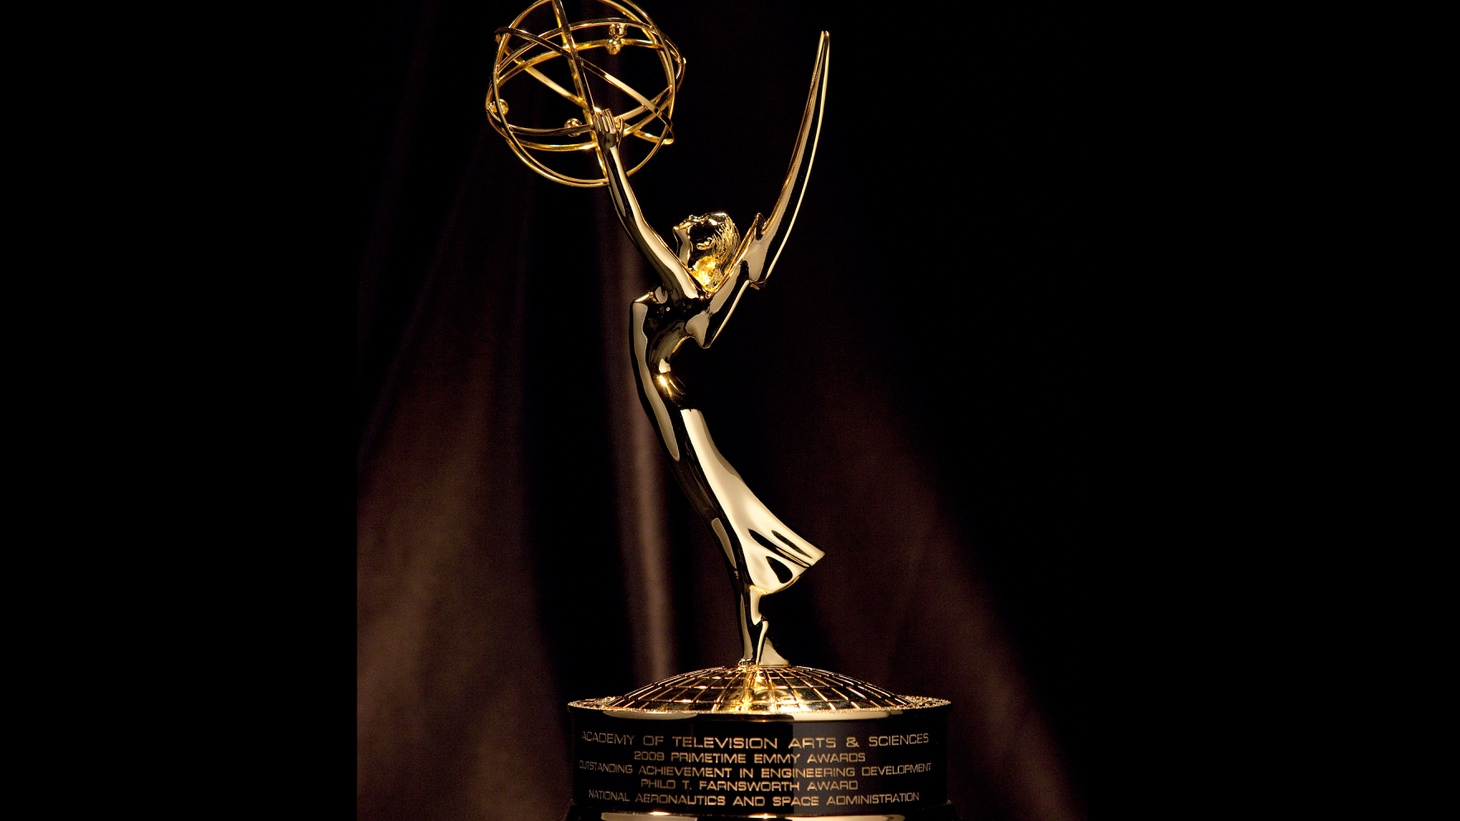 The Emmy ceremony is held tonight in Downtown Los Angeles. The event was muscled out of its usual Sunday night slot by the VMAs. We discuss whether old favorites, like Mad Men and Breaking Bad, will hold their own against newer shows like Game of Thrones and Orange is the New Black.